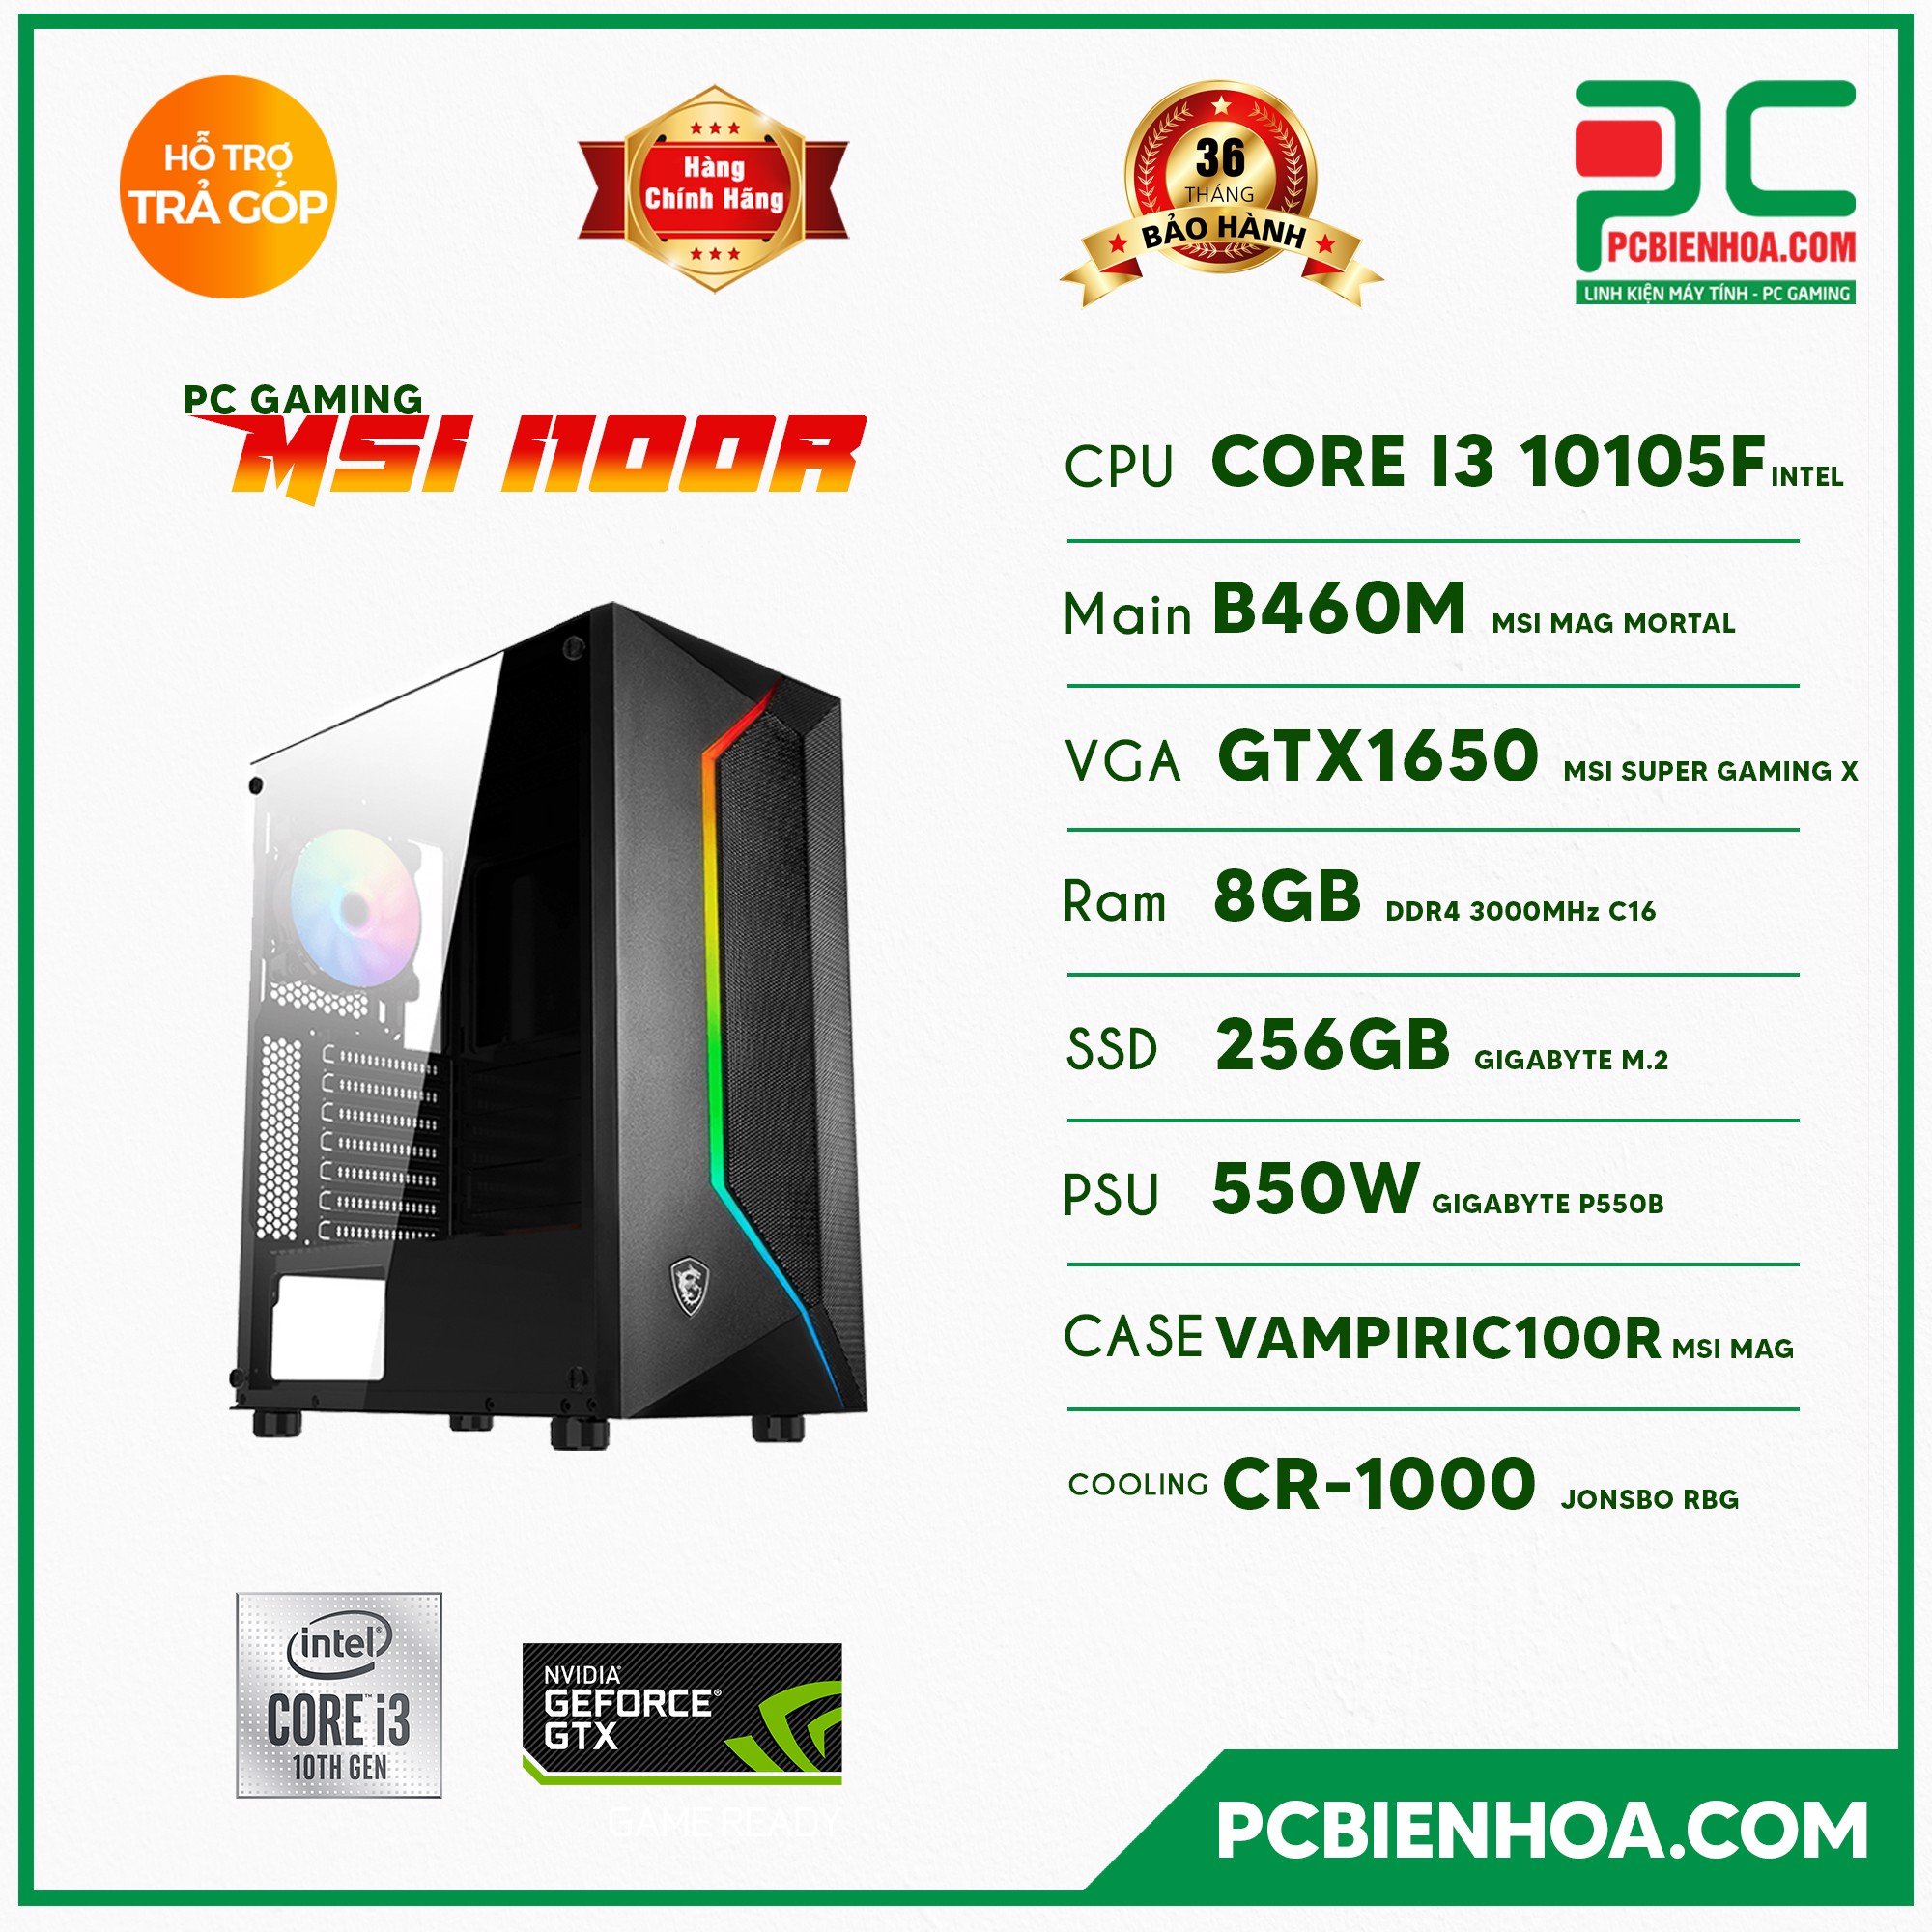 PCGAMING MSI i100R ( CORE I3 10105F / B460 / 1650 / 8GB / 256GB / 550W )